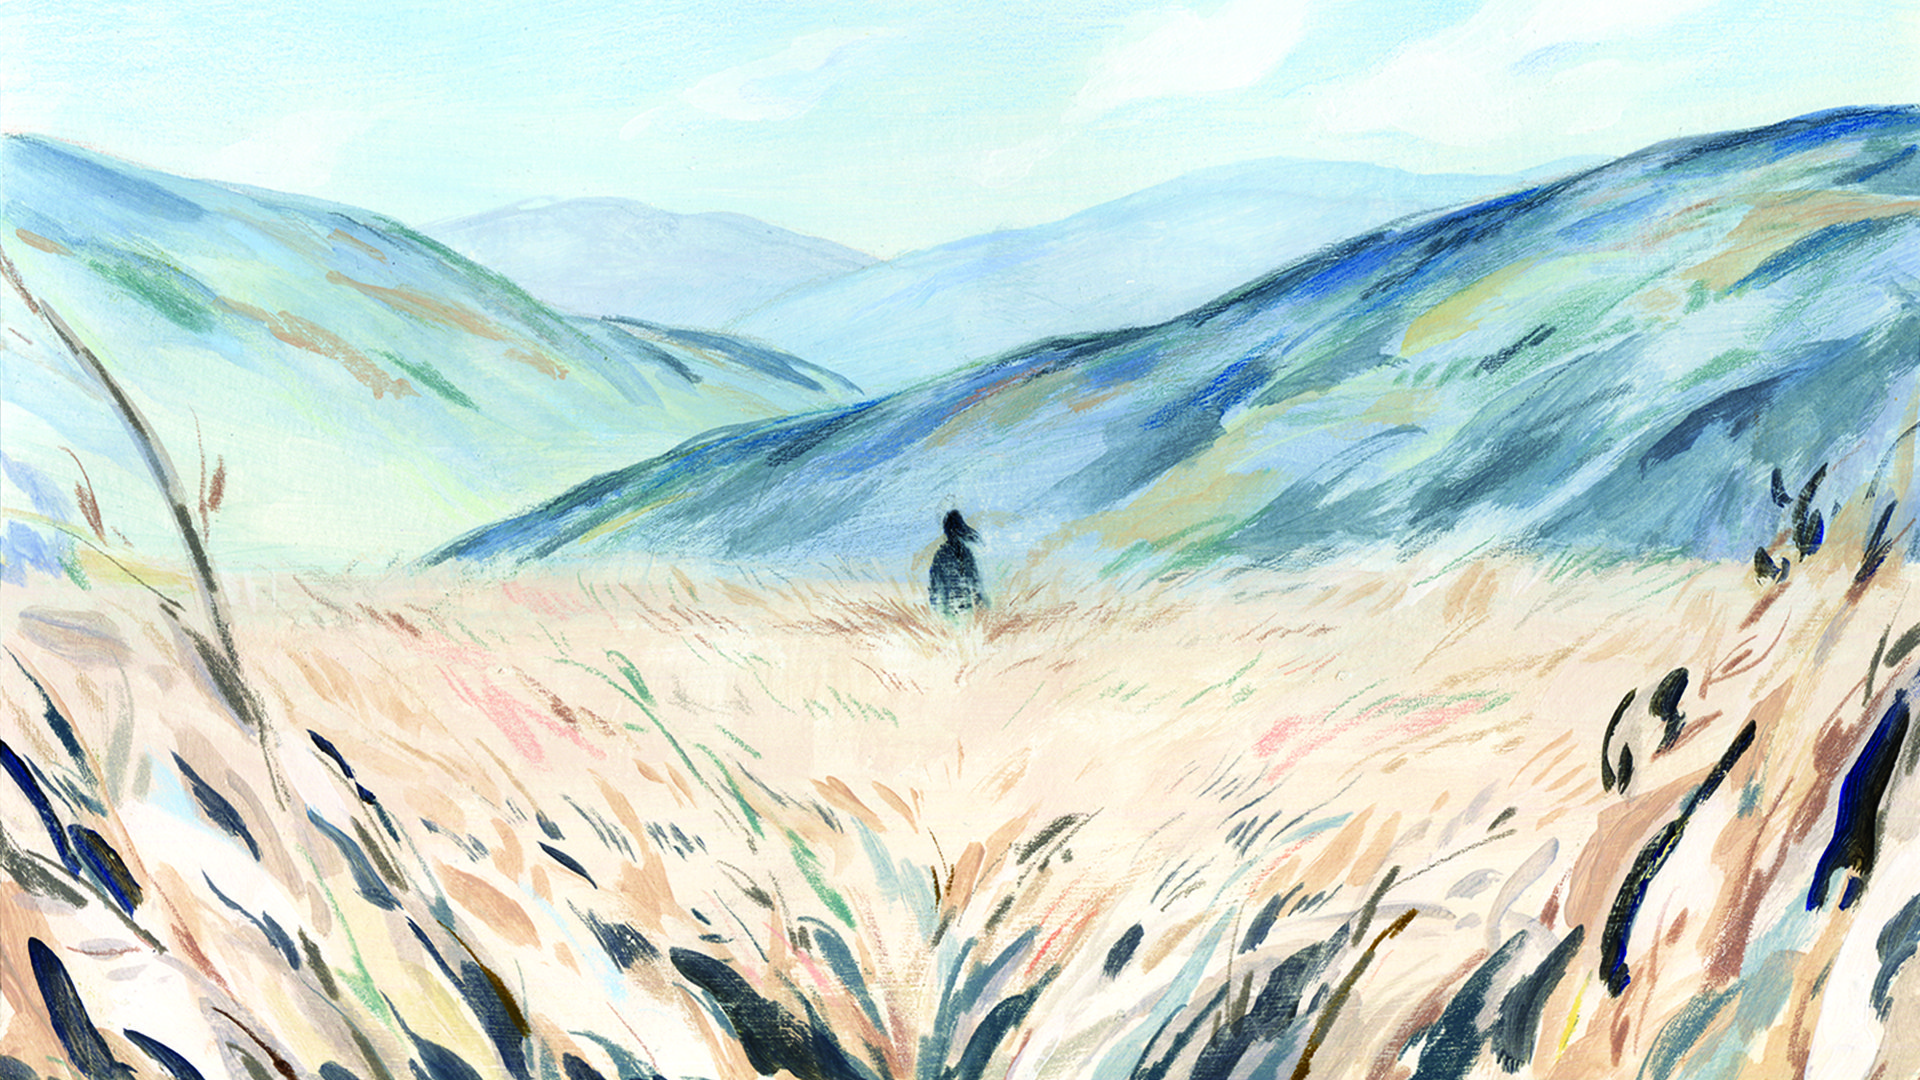 A hand-drawn illustration of a woman walking in a field toward blue mountains.